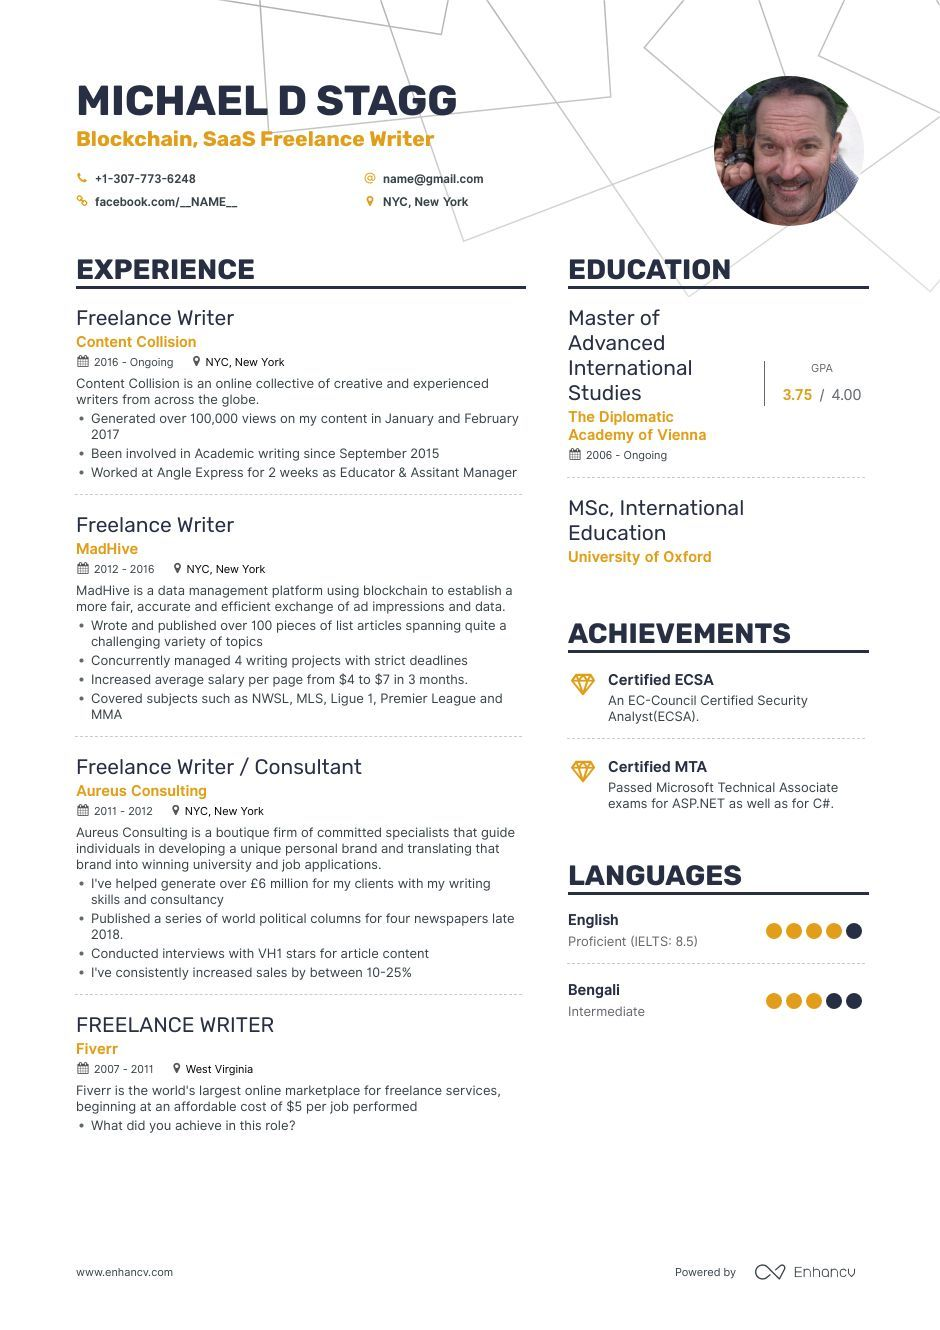 Freelance Writer Resume Examples and Skills You Need to